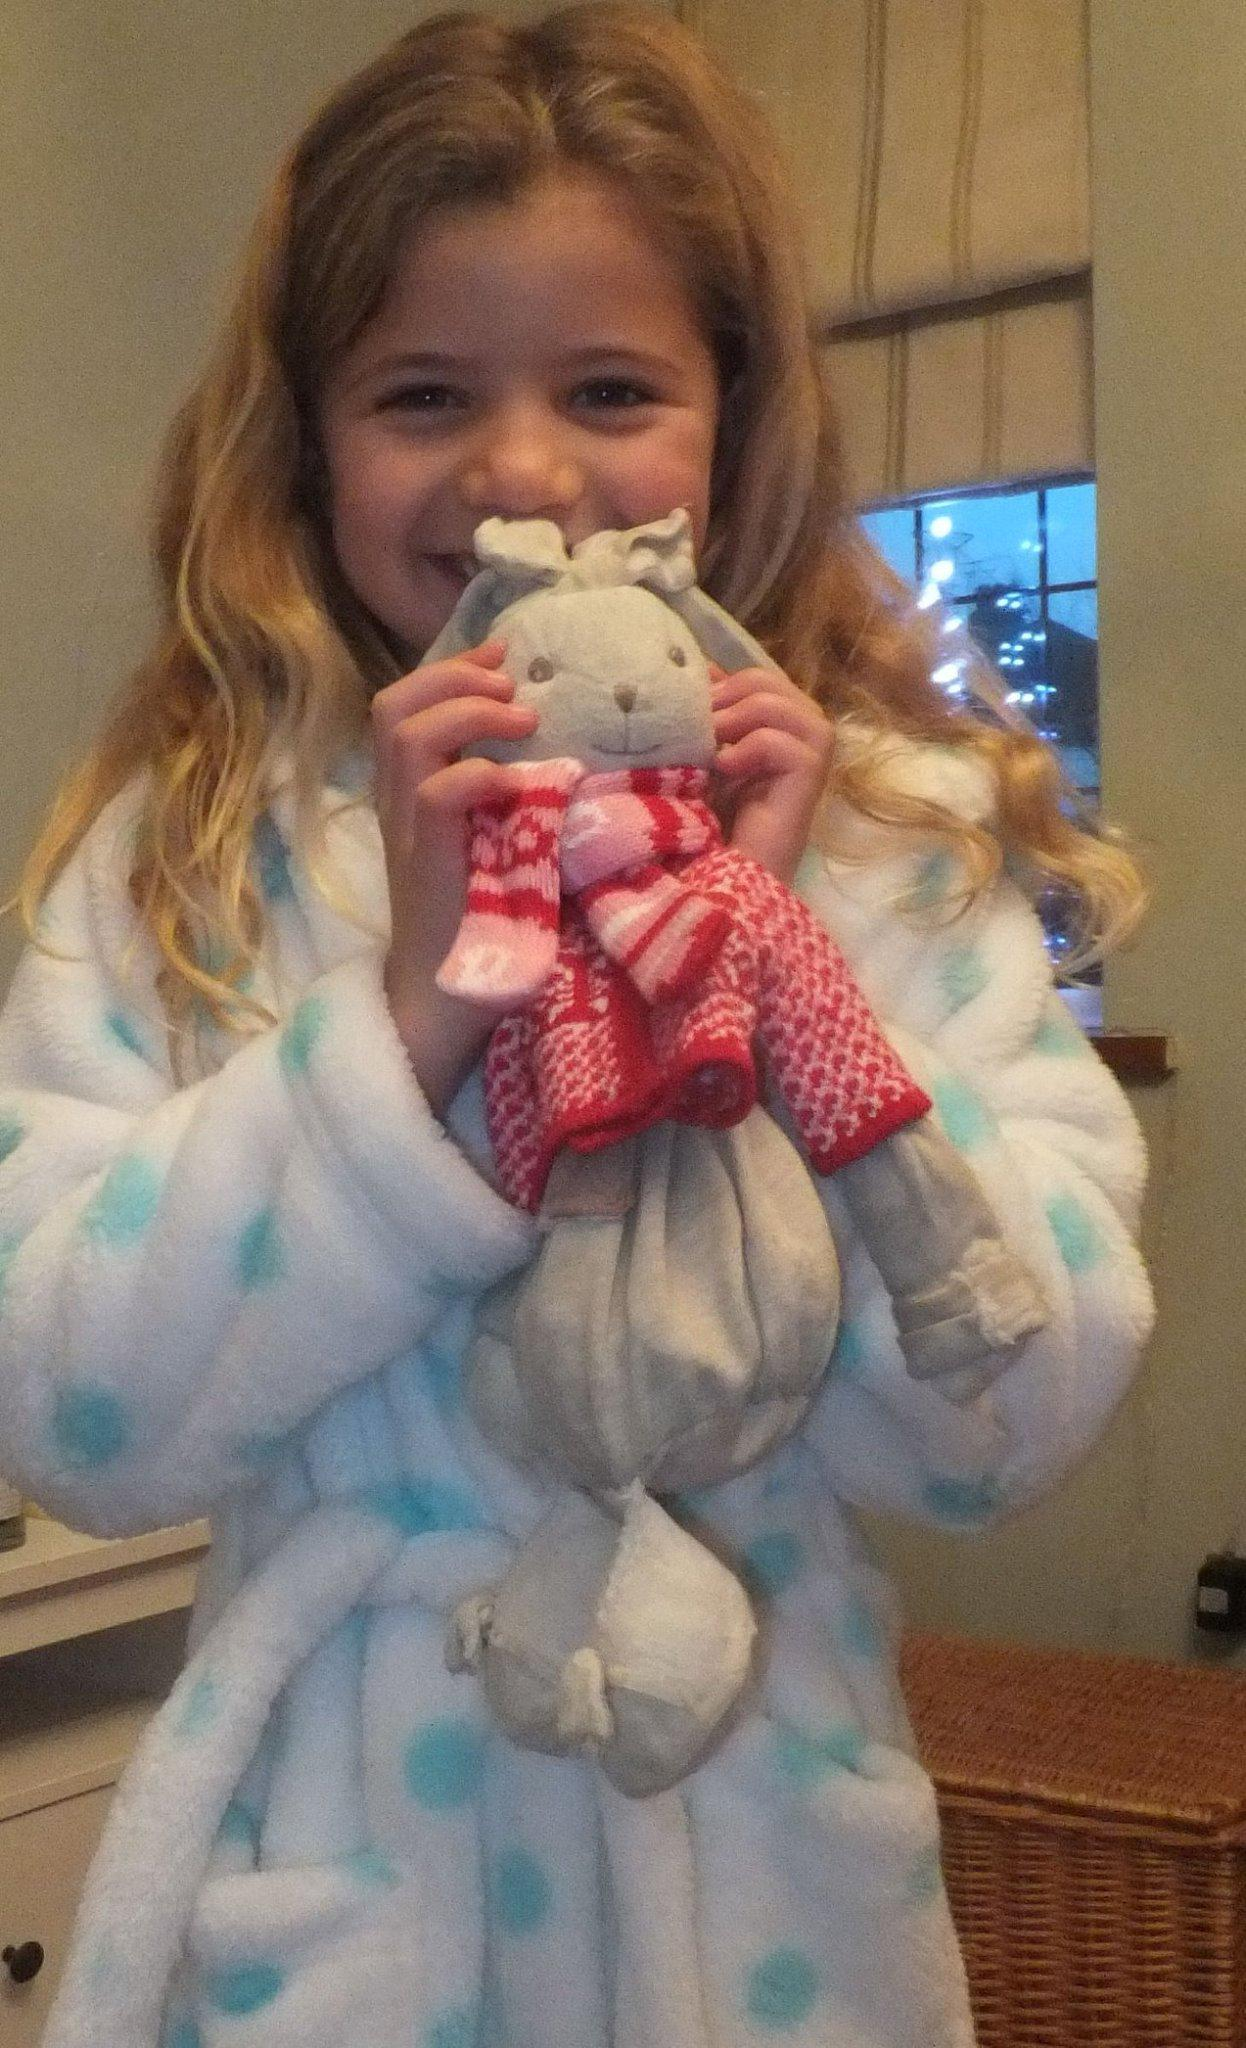 RT @emmadavies68: Beloved rabbiit left at Blacklands camp (Henfield) on 21st June. He didn't have his jumper on. Please help! #LOST http://…